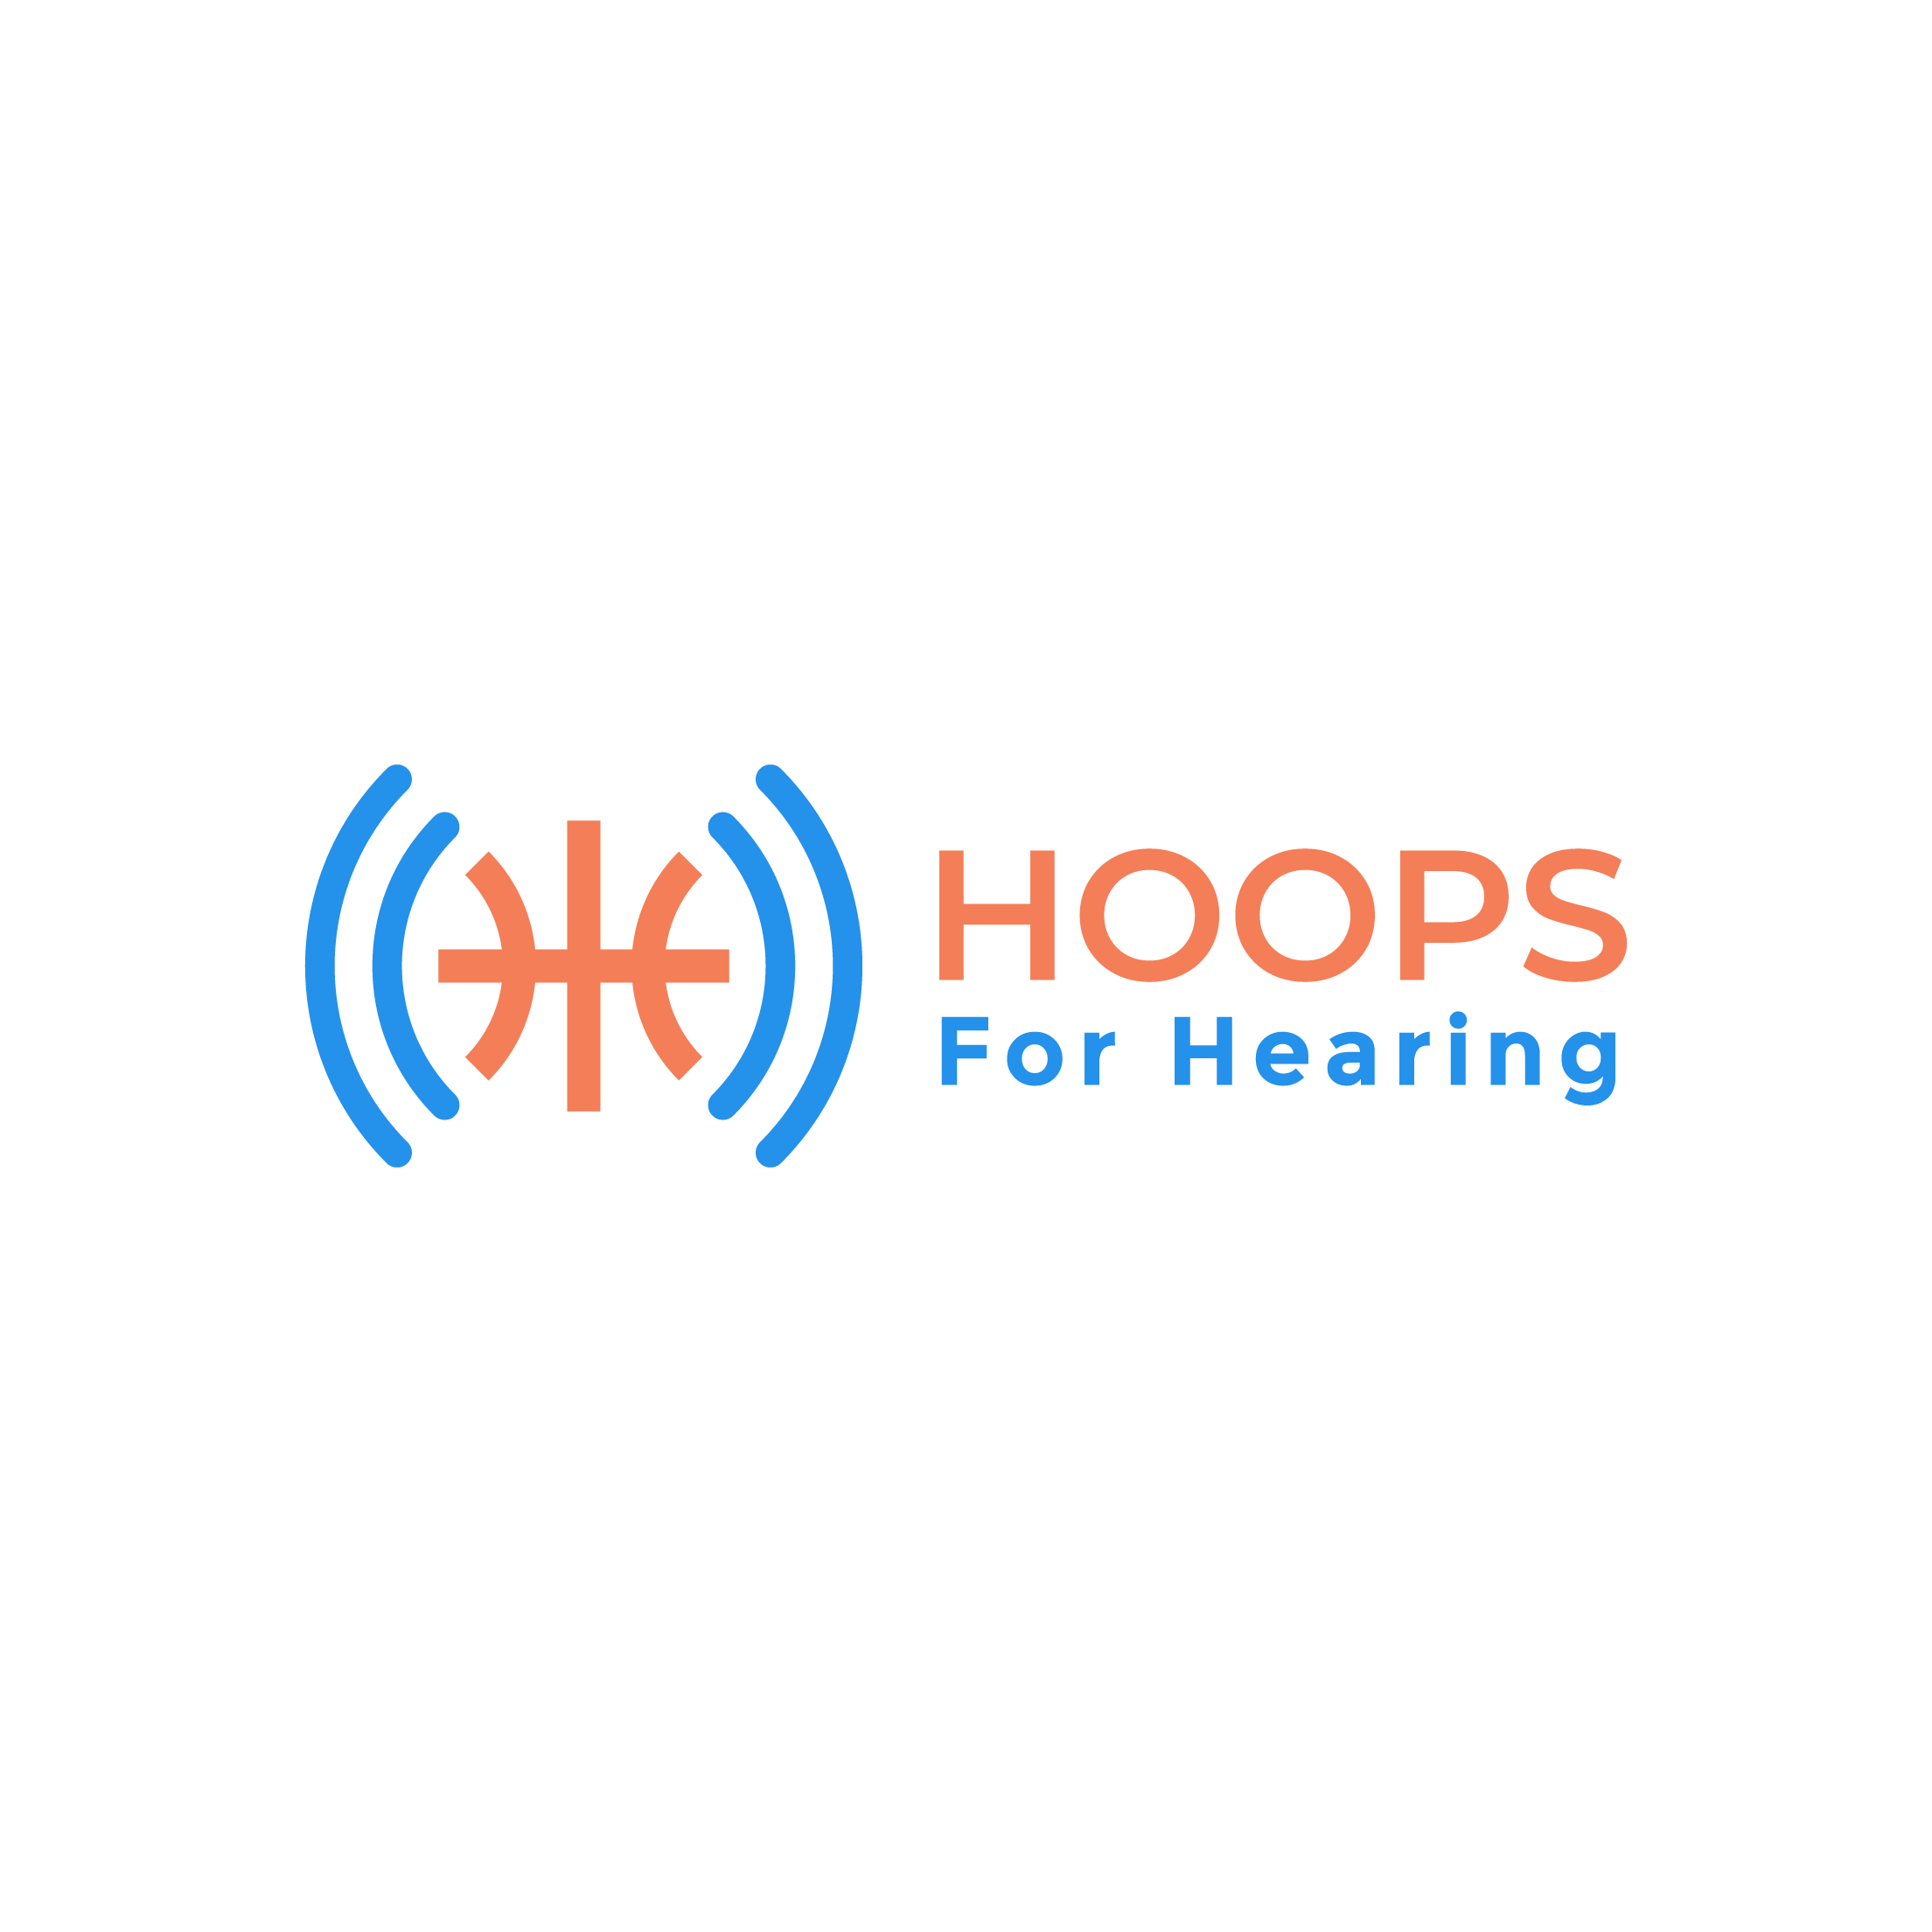 Hoops for Hearing